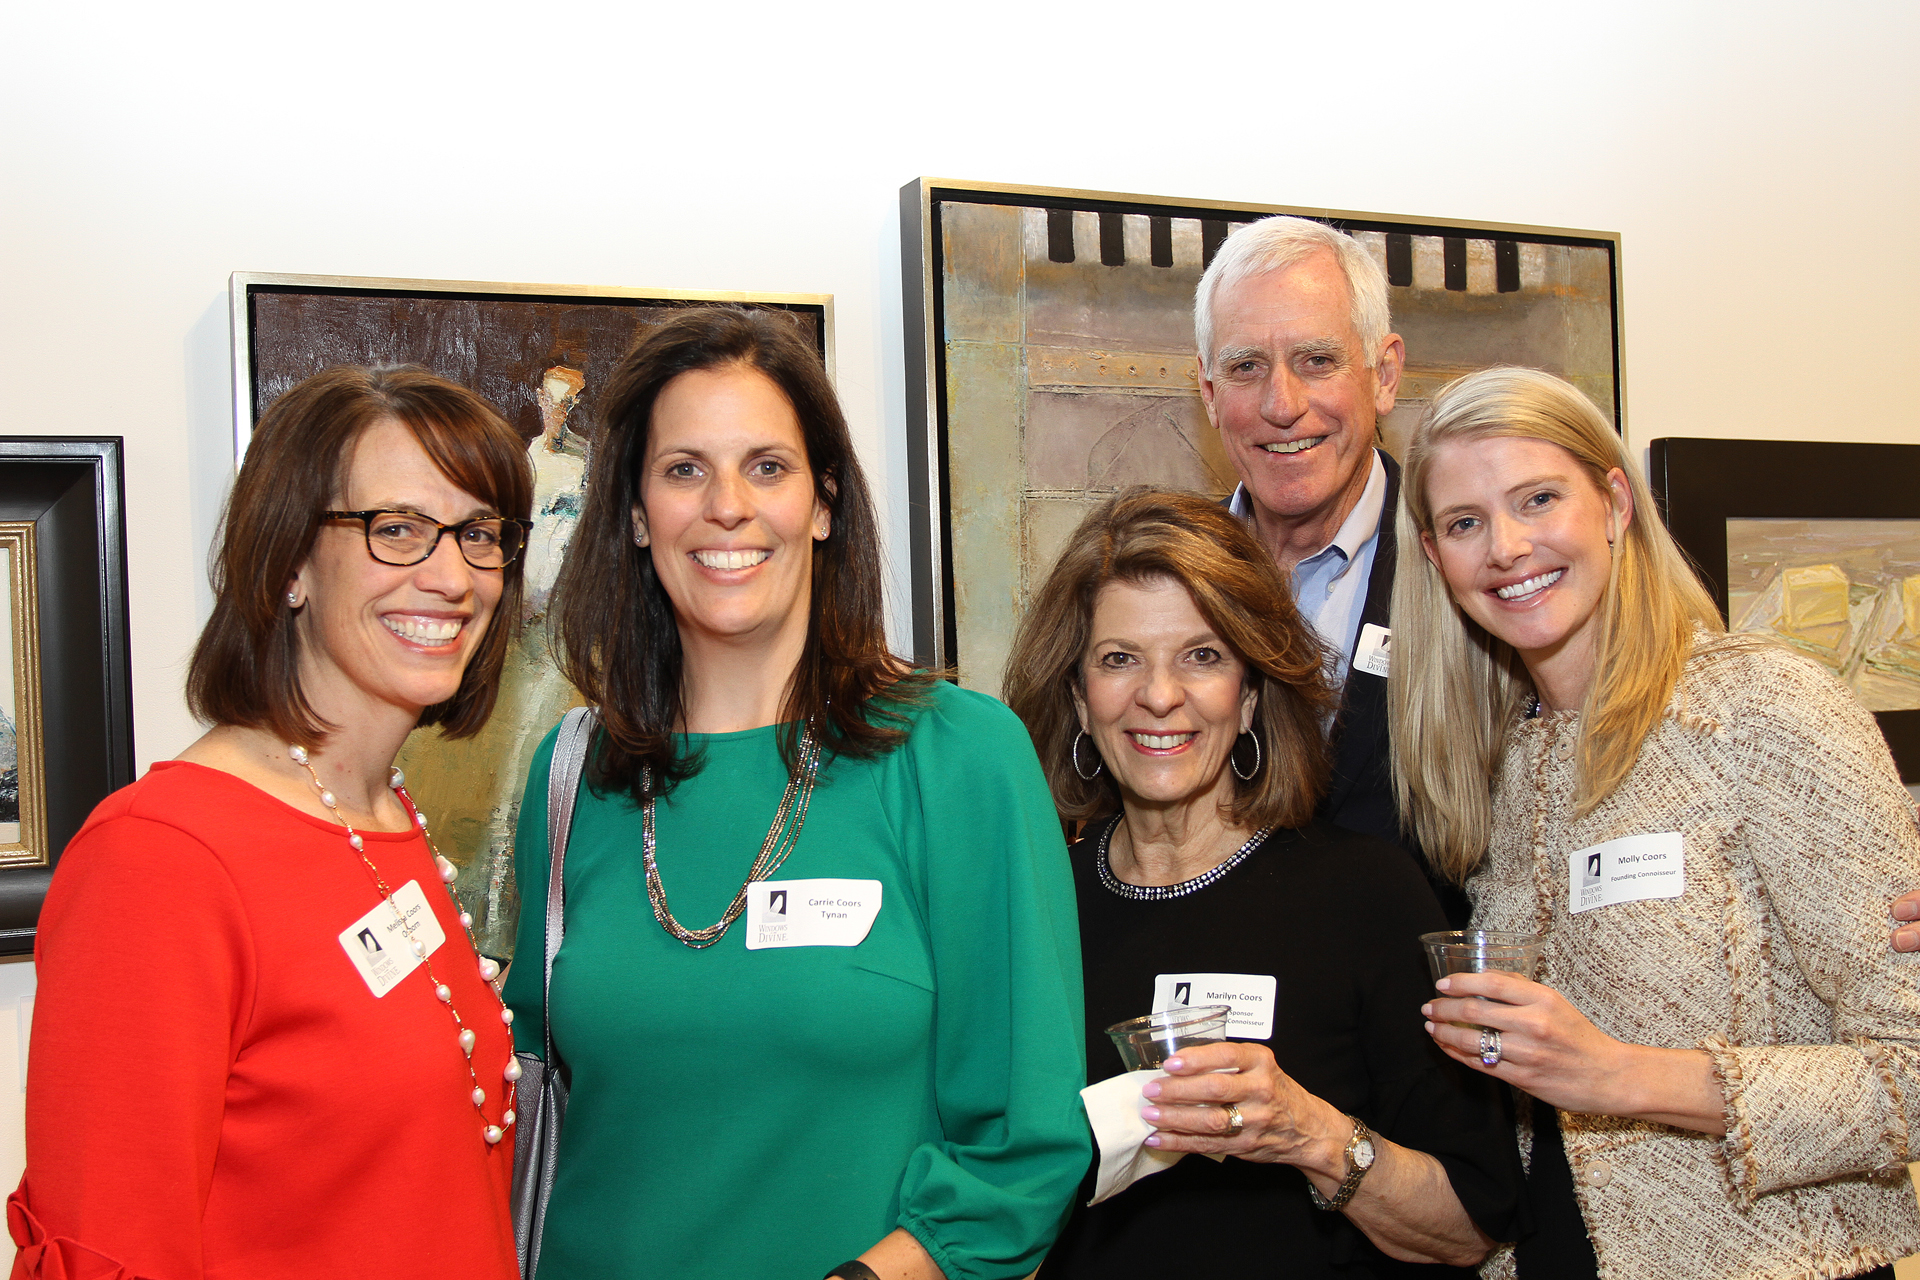 17 – IMG_5001_Opening Gala_Melissa Osborn, Carrie Tynan, Marilyn Coors, Pete Coors, Molly Coors